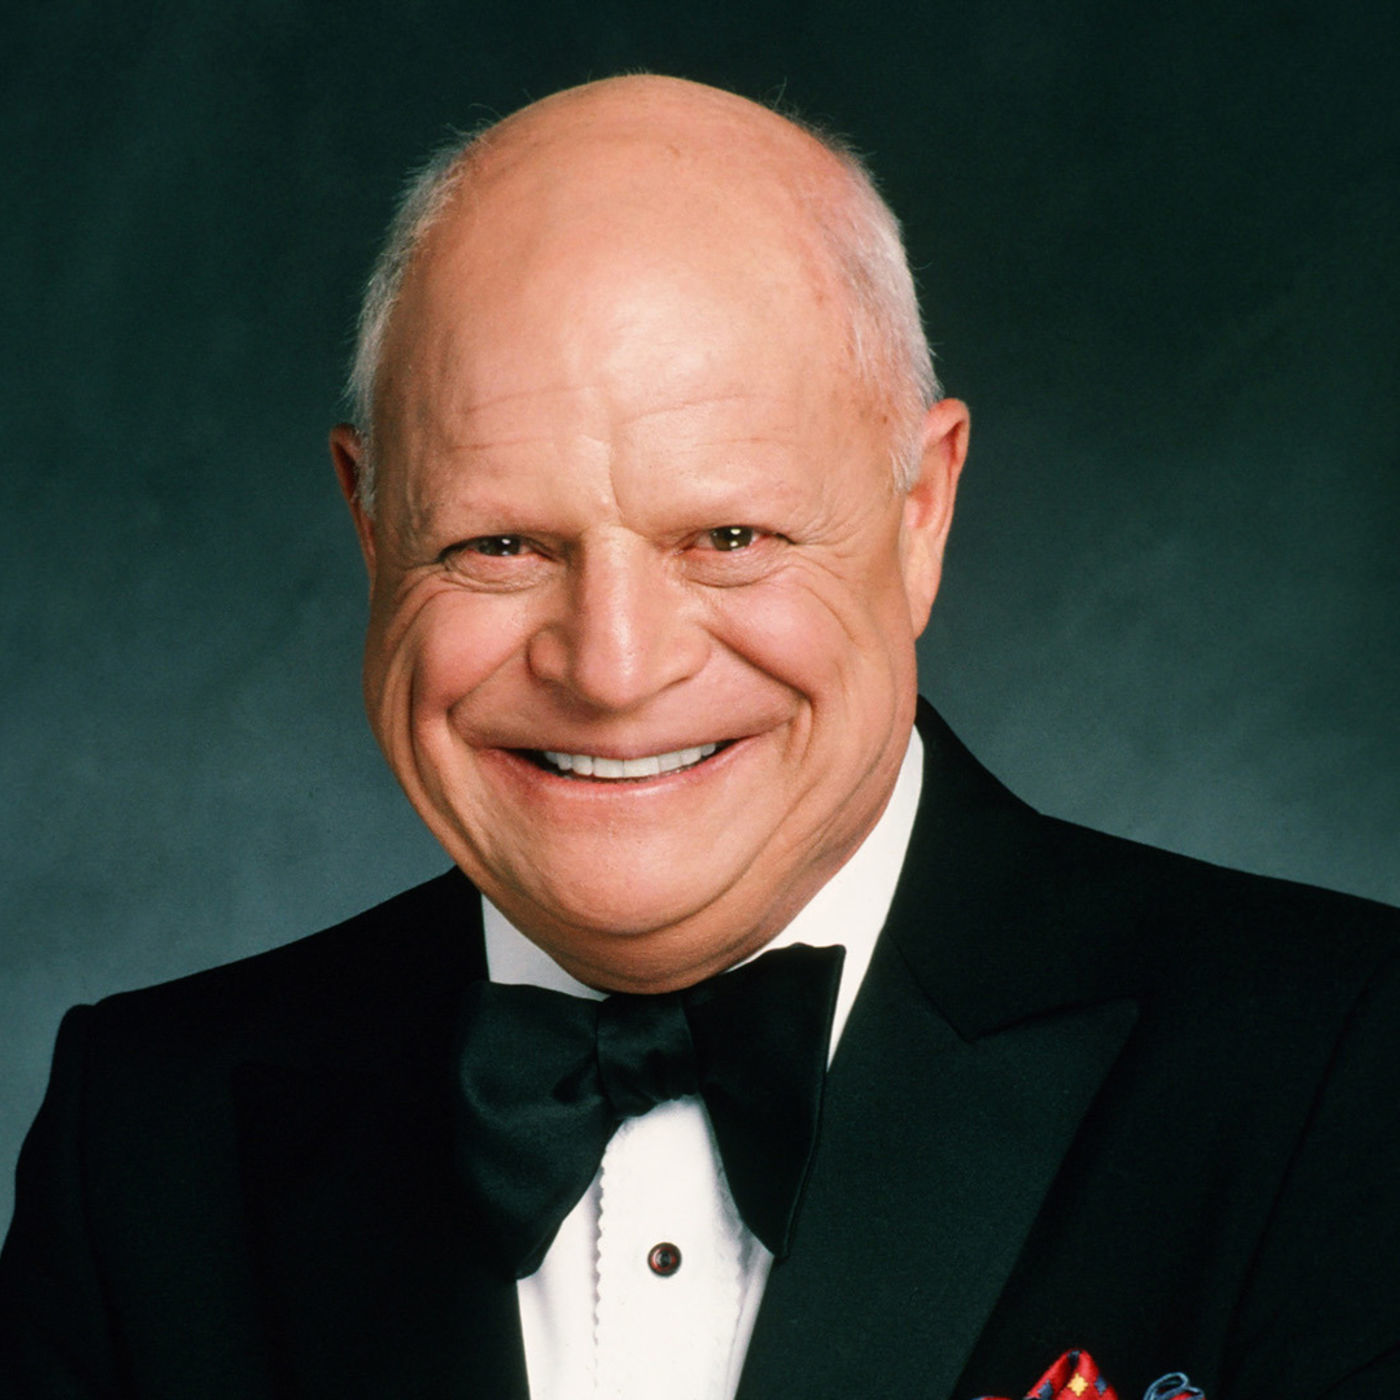 Episode 32 | Why is Don Rickles a Comedy Legend?